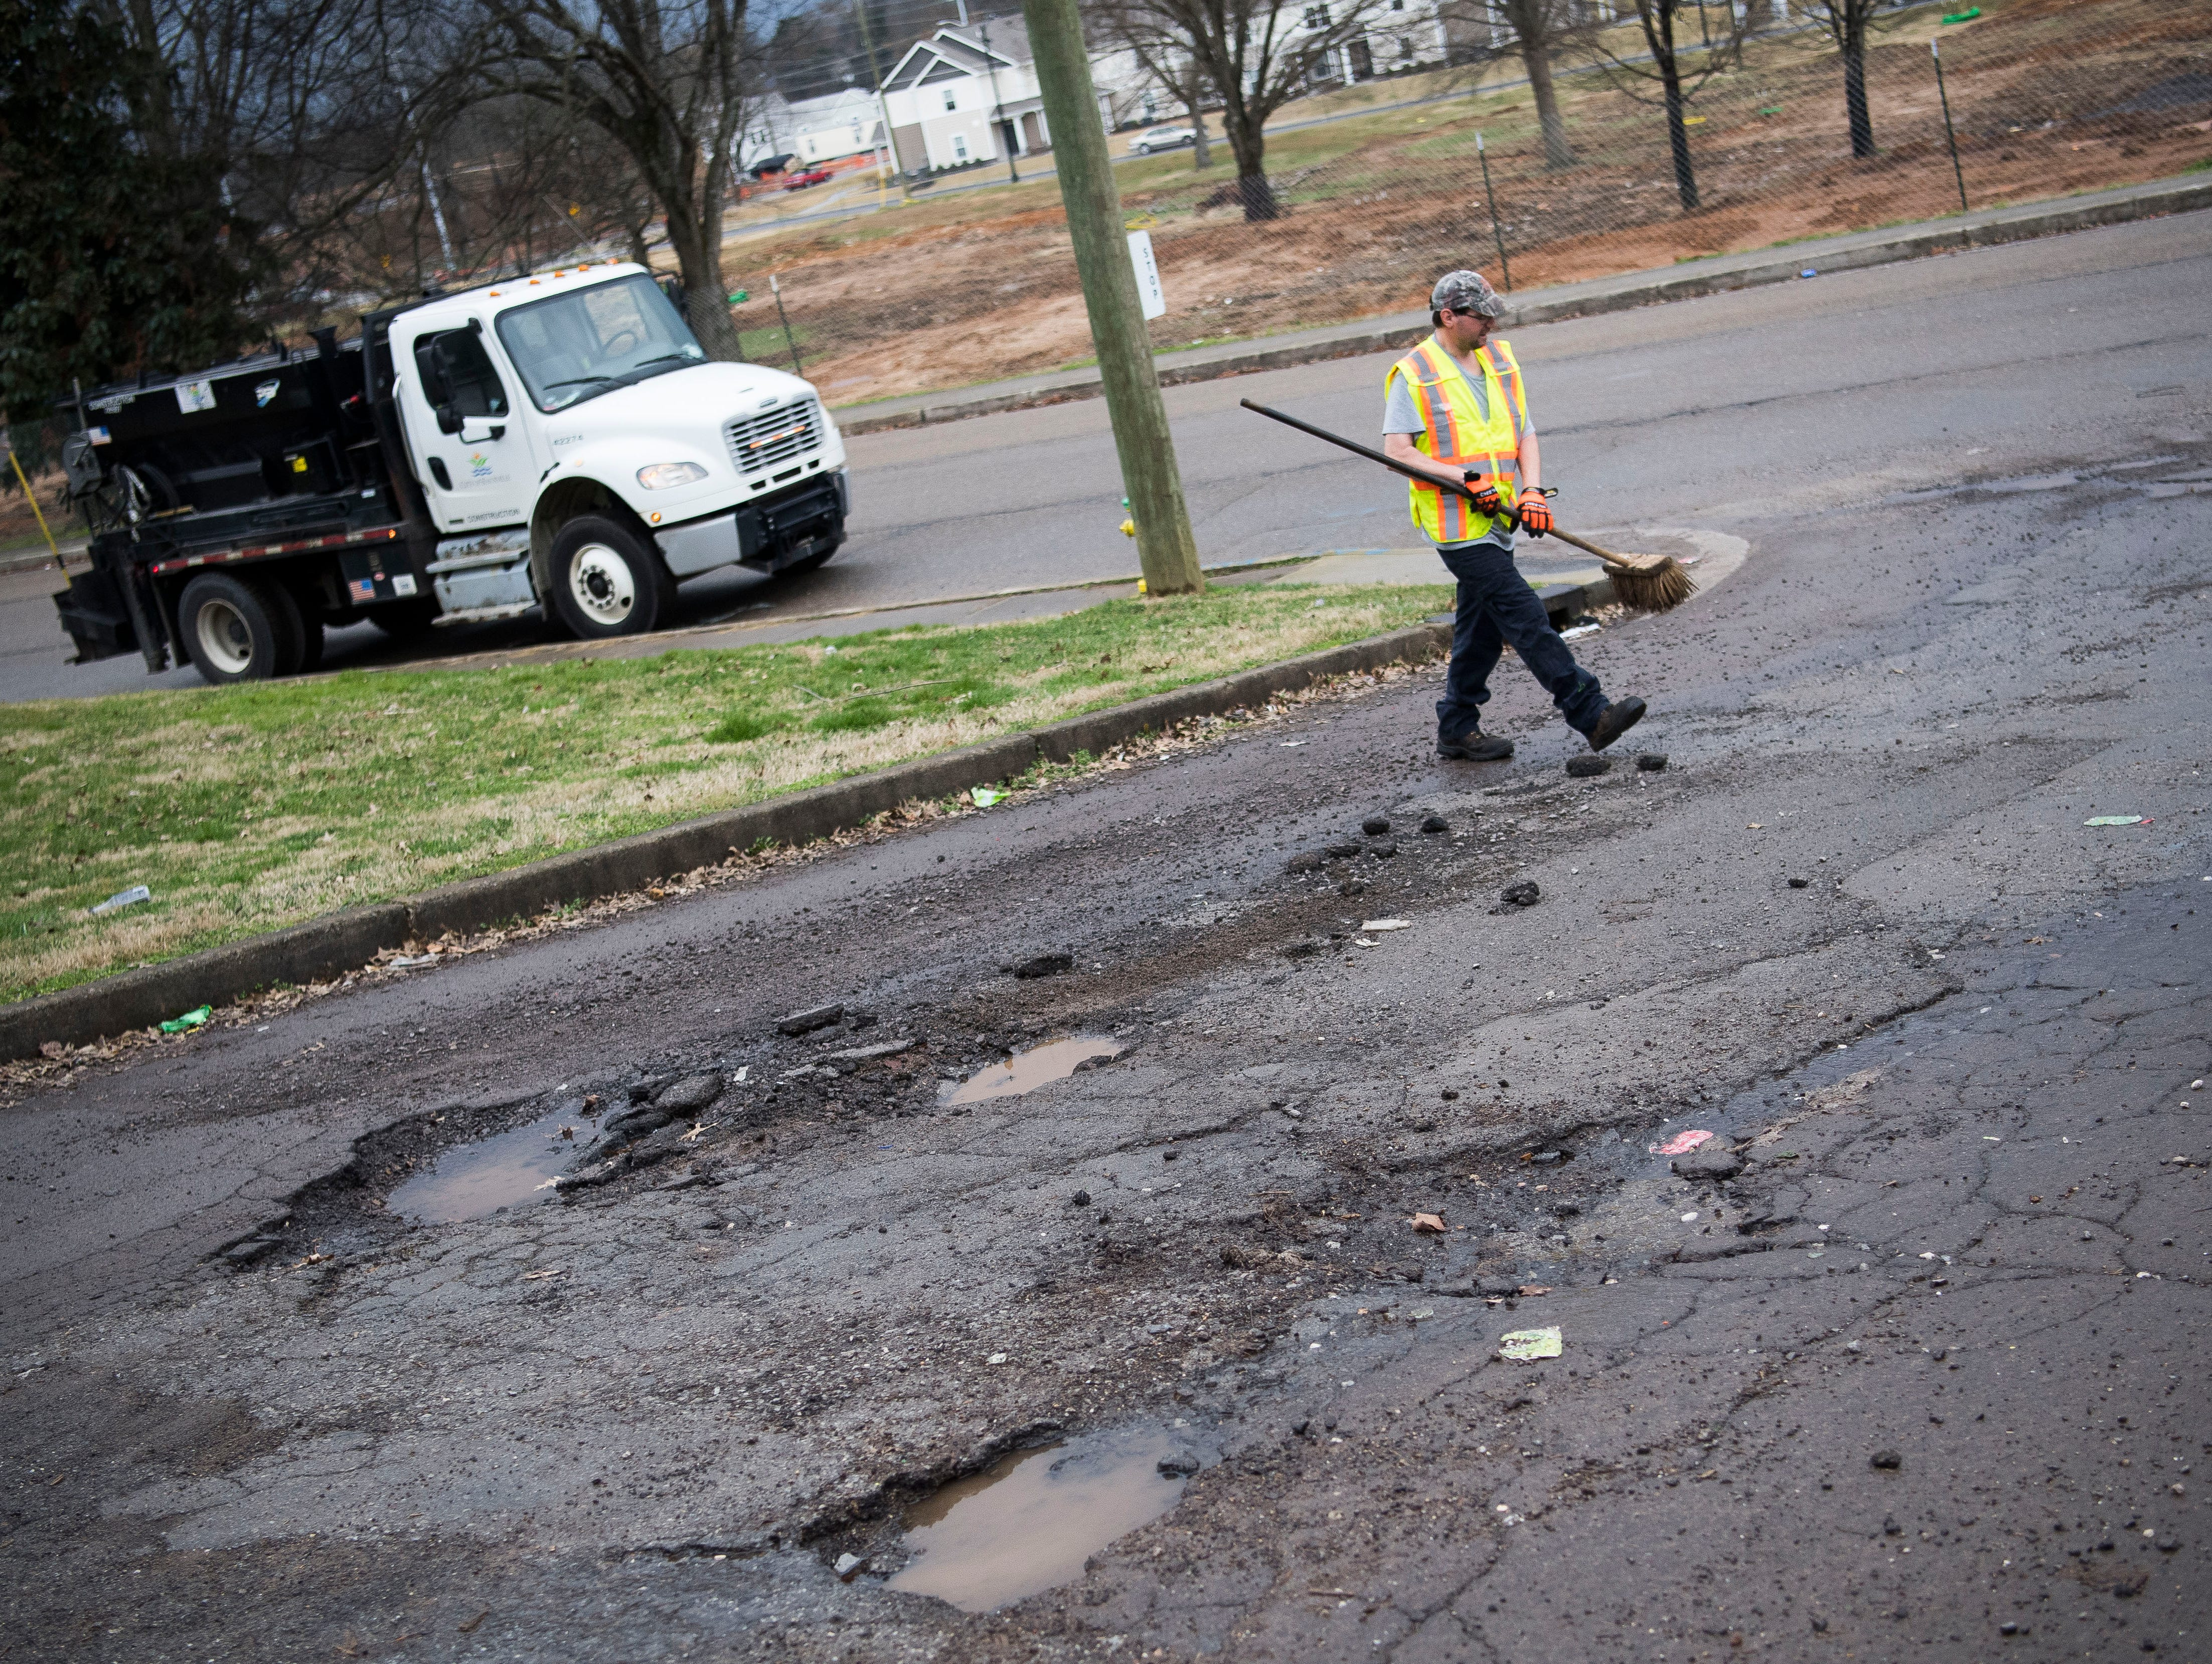 City of Knoxville employee Chris Orlandi walks towards potholes which are about to be filled by a City of Knoxville crew on Sanders Lane in East Knoxville, Thursday, Feb. 7, 2018